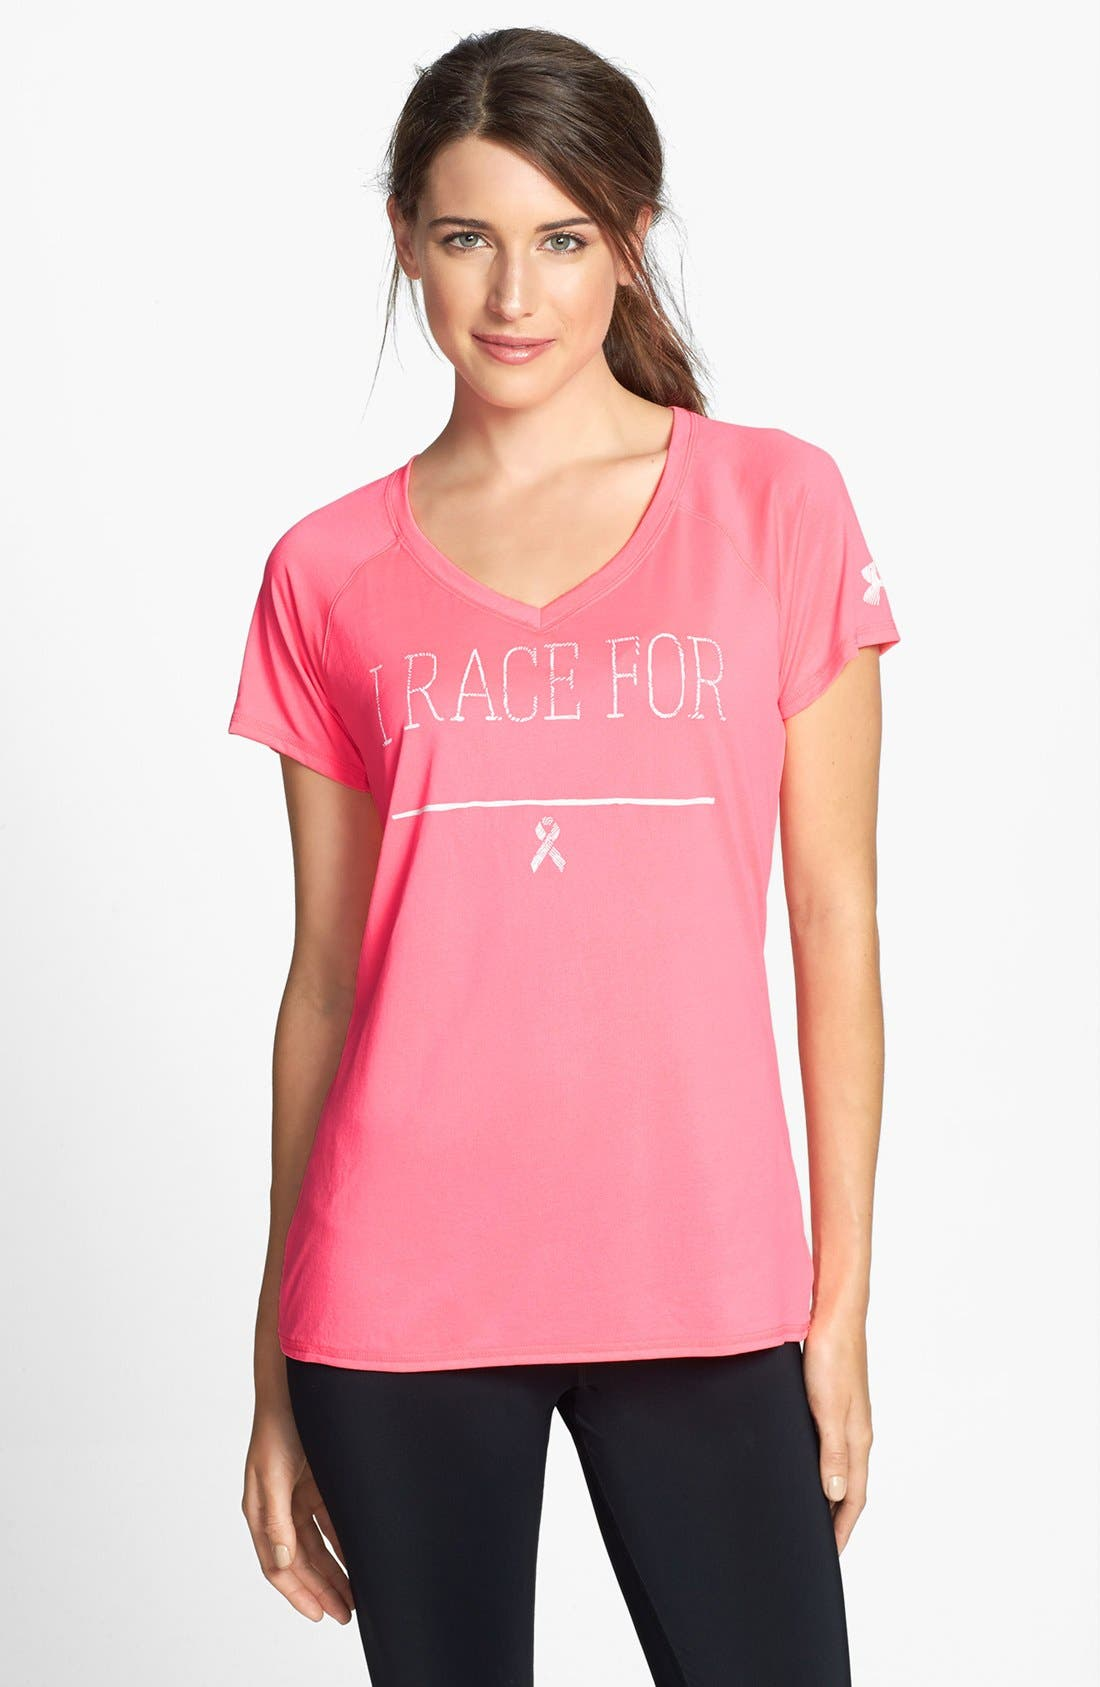 Alternate Image 1 Selected - Under Armour 'I Race For' Power in Pink® Tee